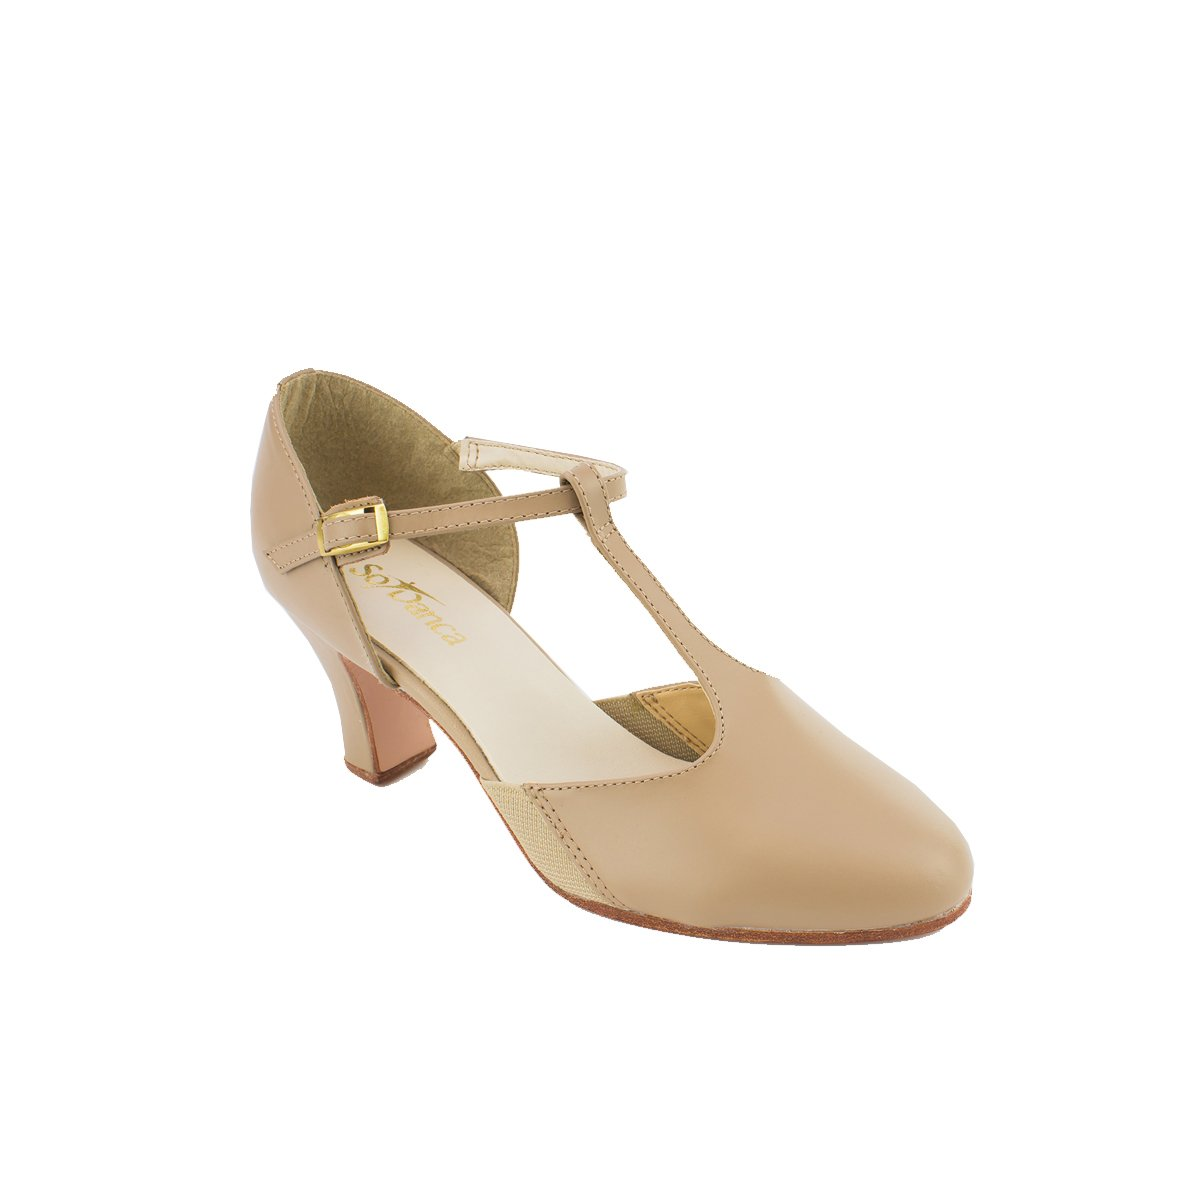 "SoDanca CH-56 Clarice 2.5"" Heel All Leather T Strap Character Shoe"